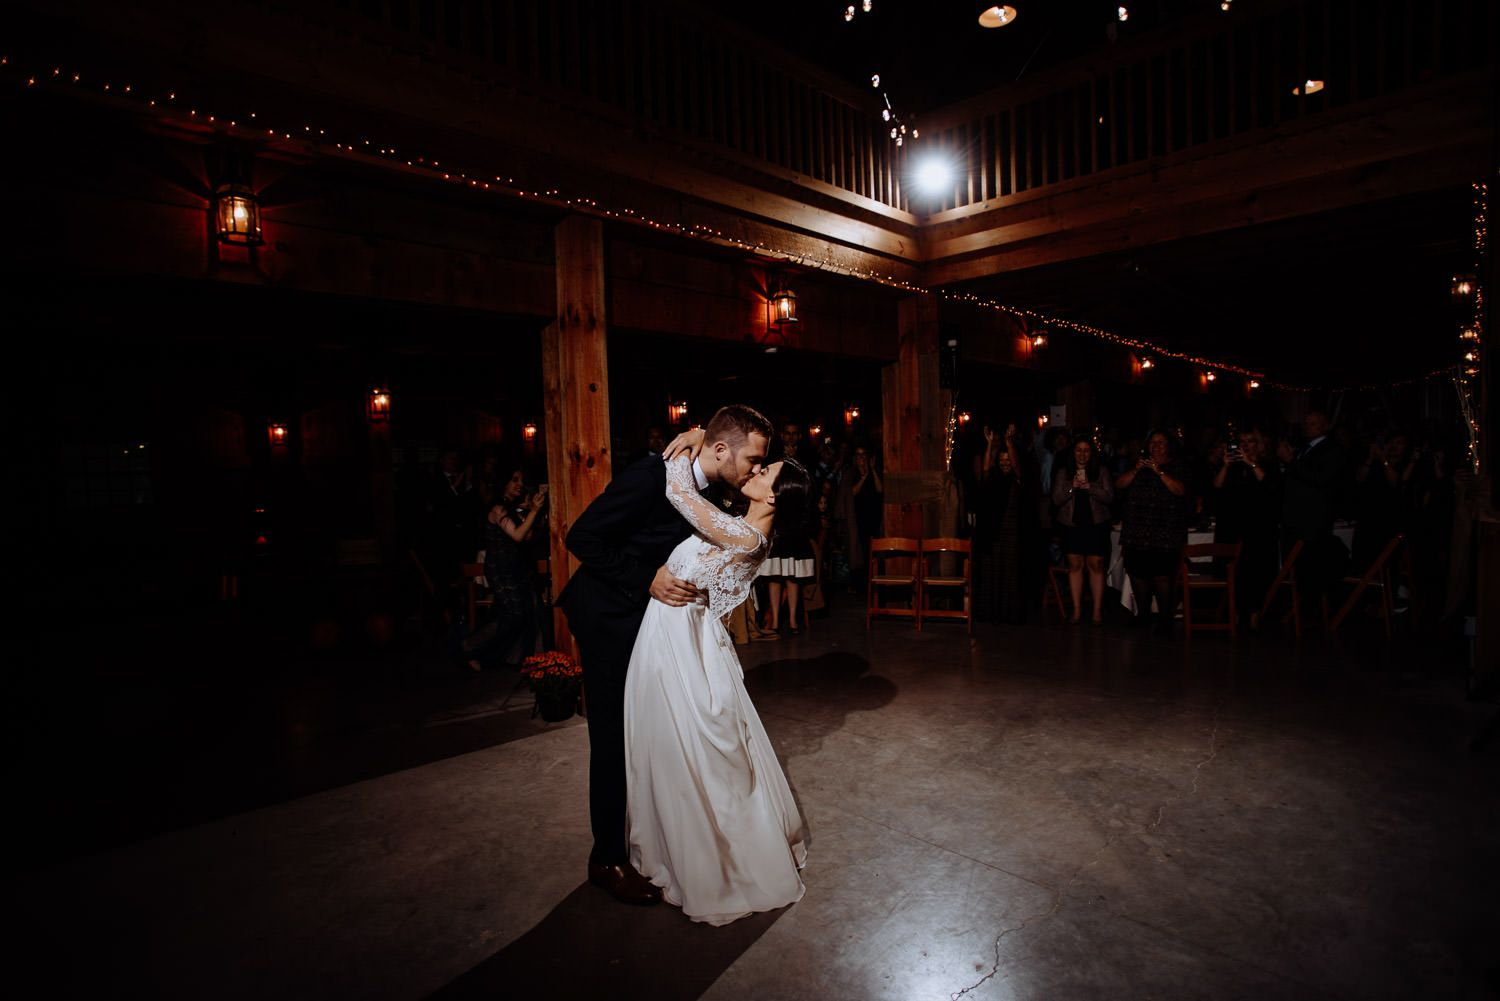 NY Barn Wedding Venue as captured by Samantha June of ...